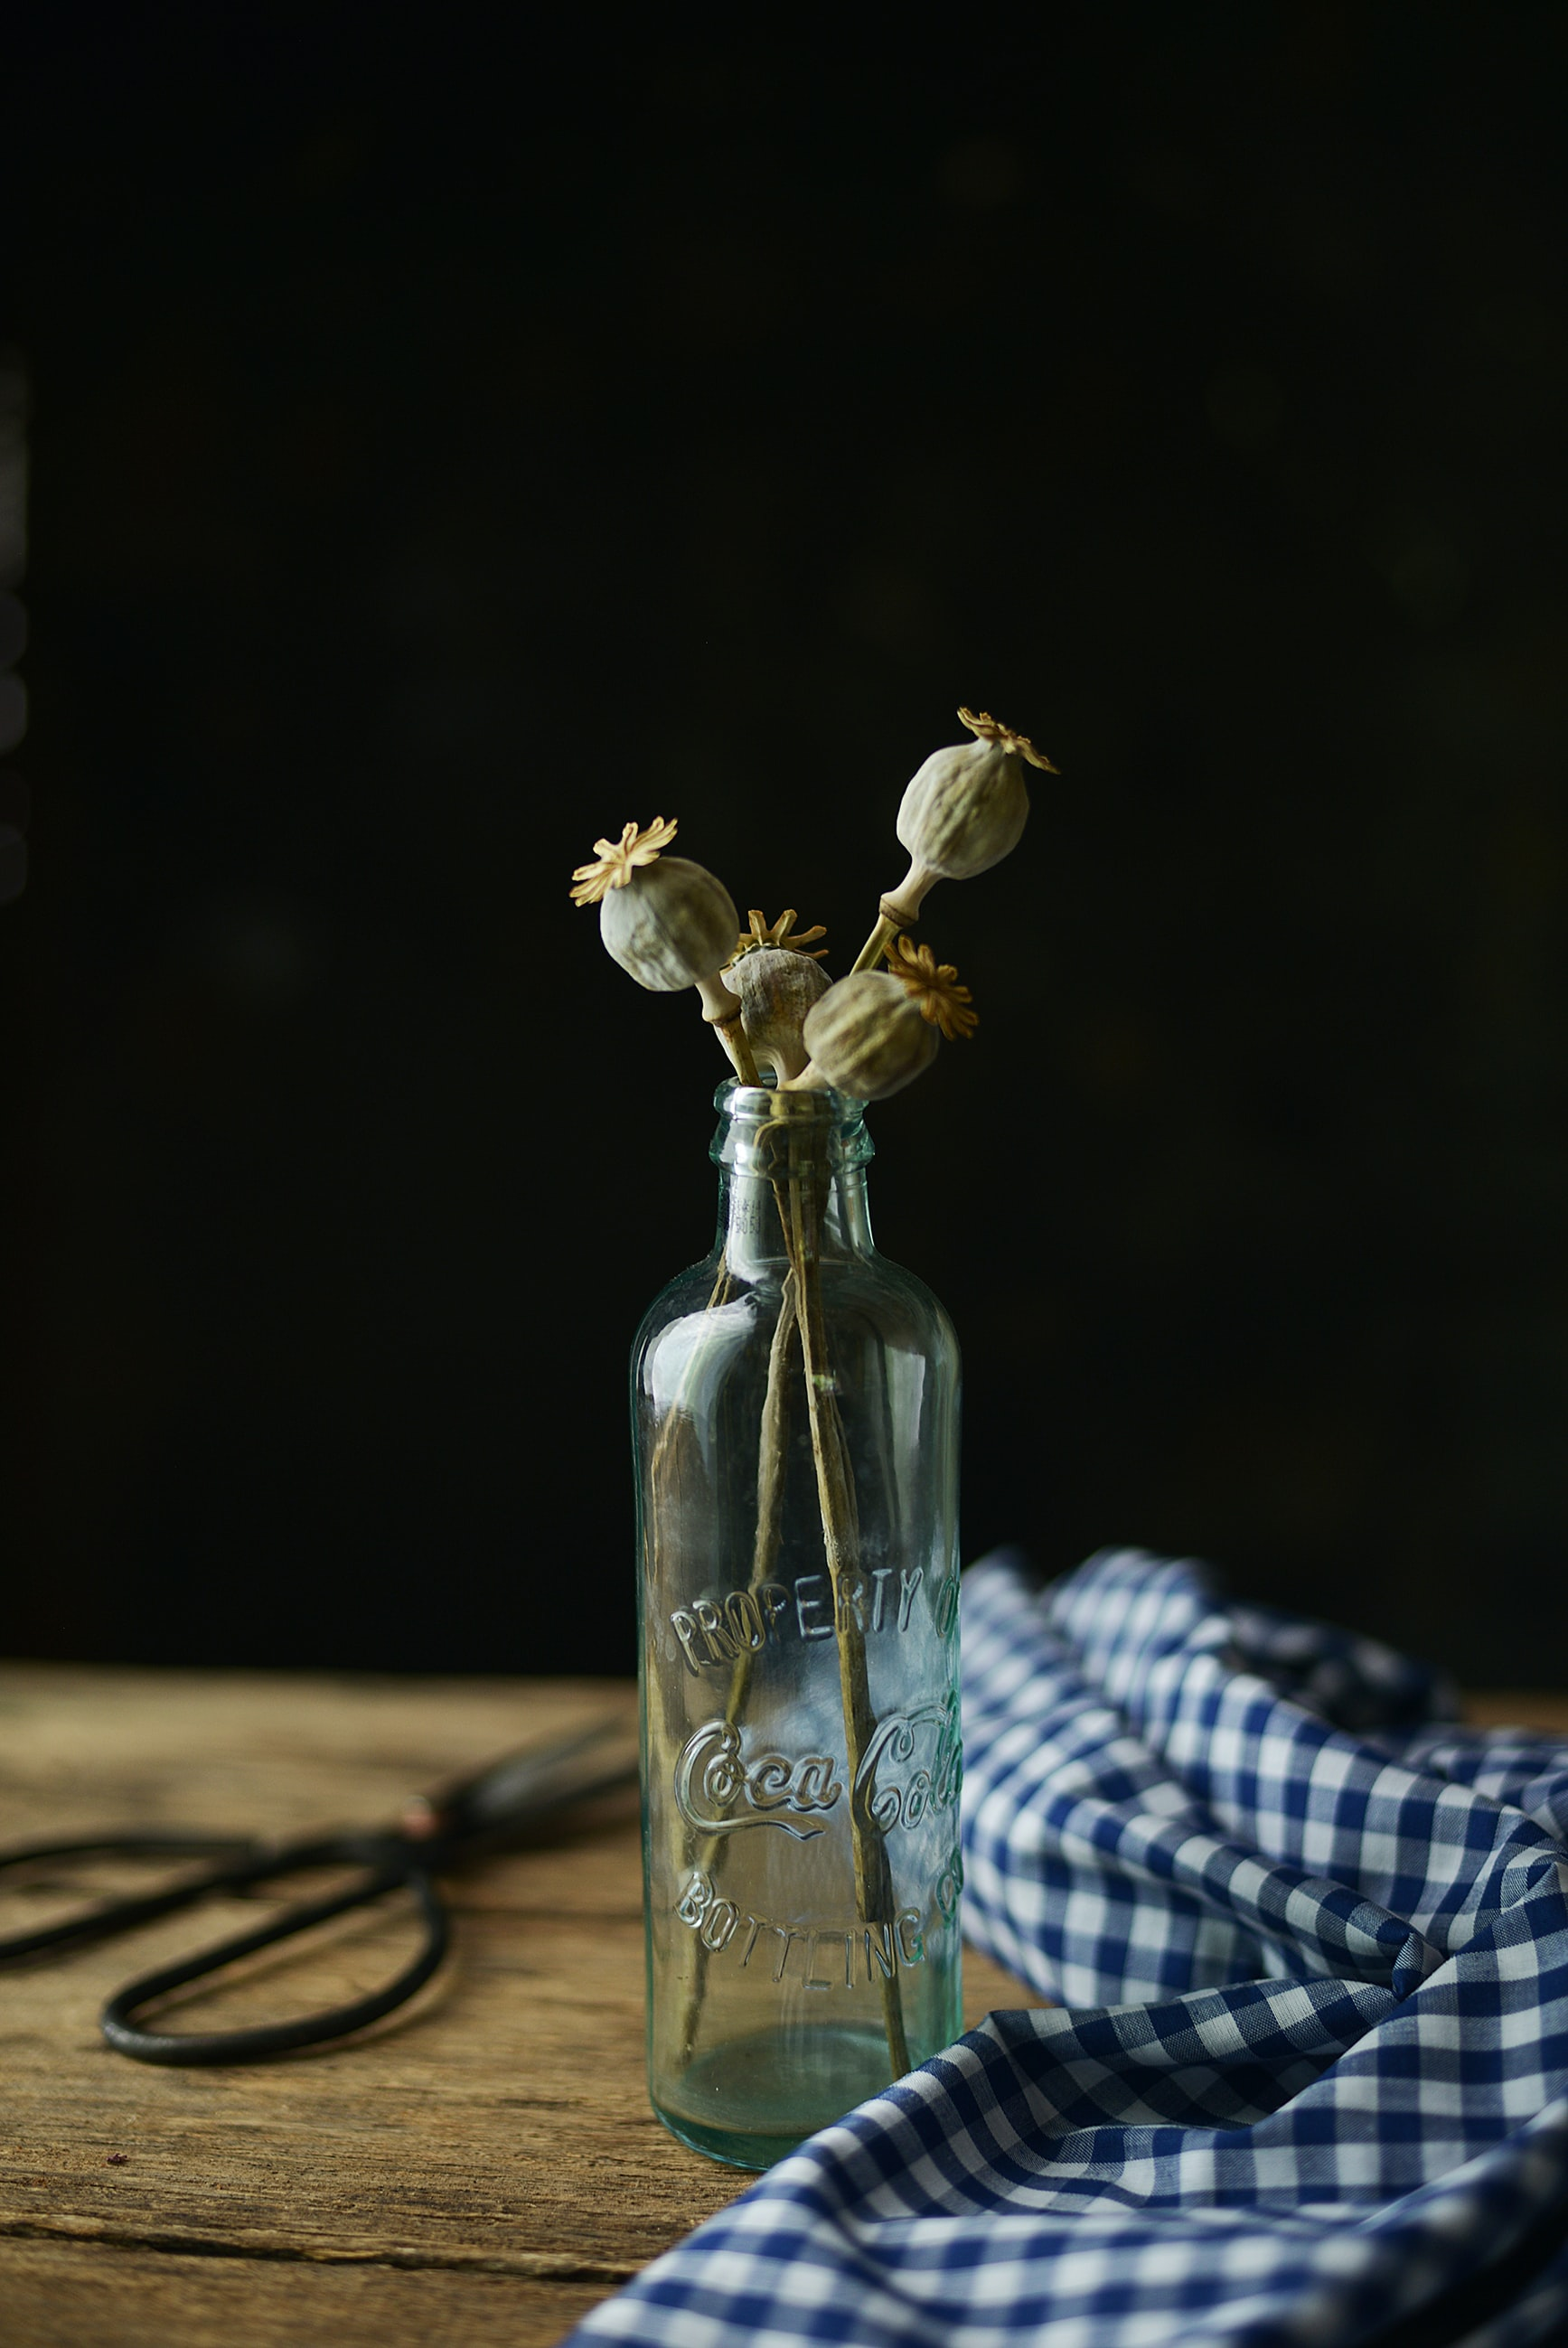 clear glass bottle with white flowers on table